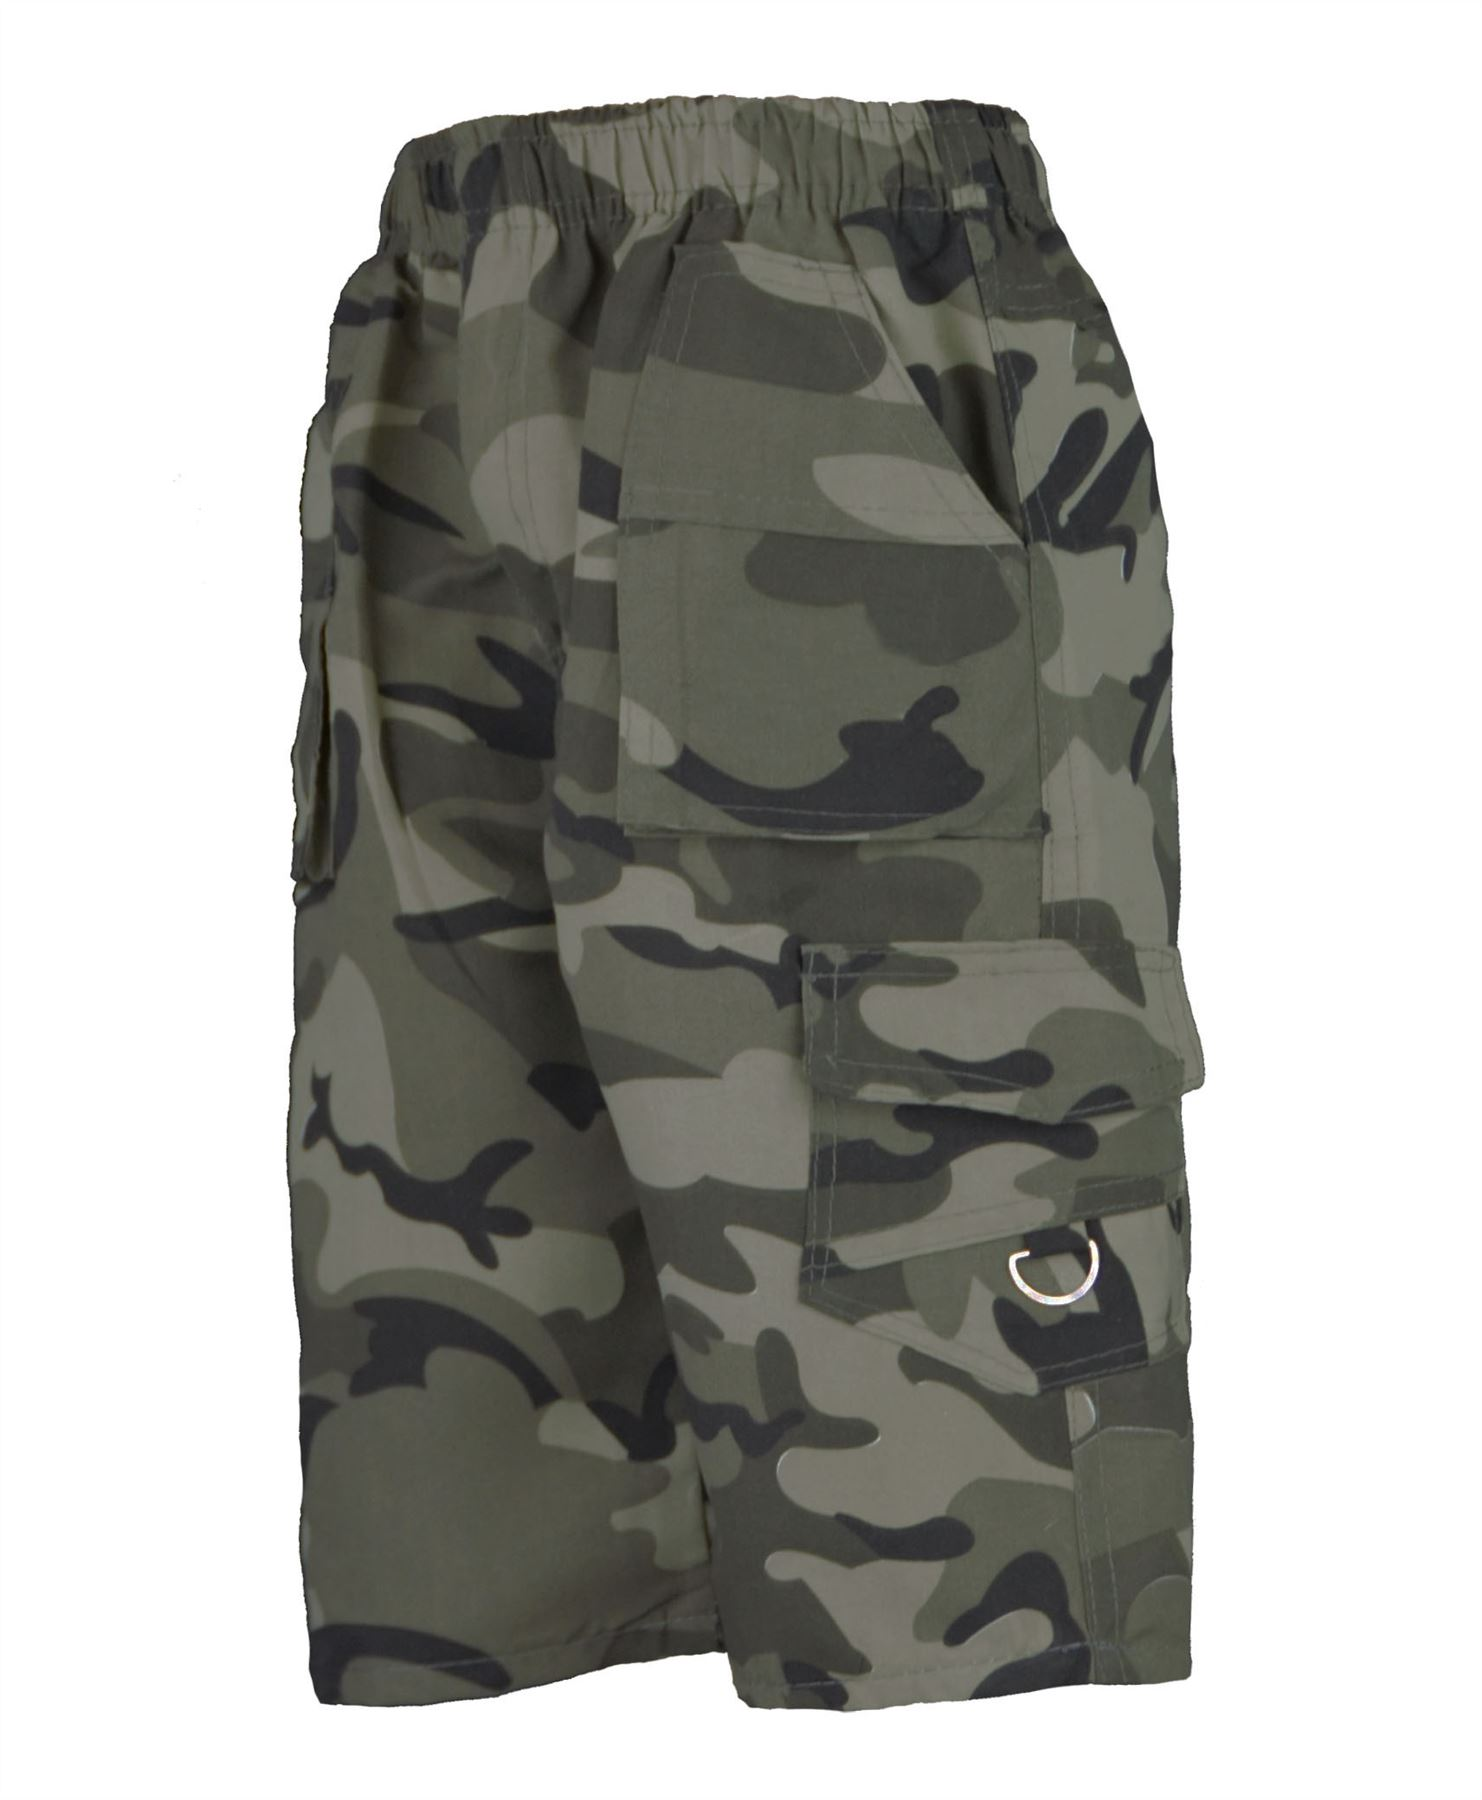 KIDS-PLAIN-amp-CAMOUFLAGE-MULTIPOCKET-SHORTS-BOYS-ARMY-PRINT-CARGO-COMBAT-3-14-Y